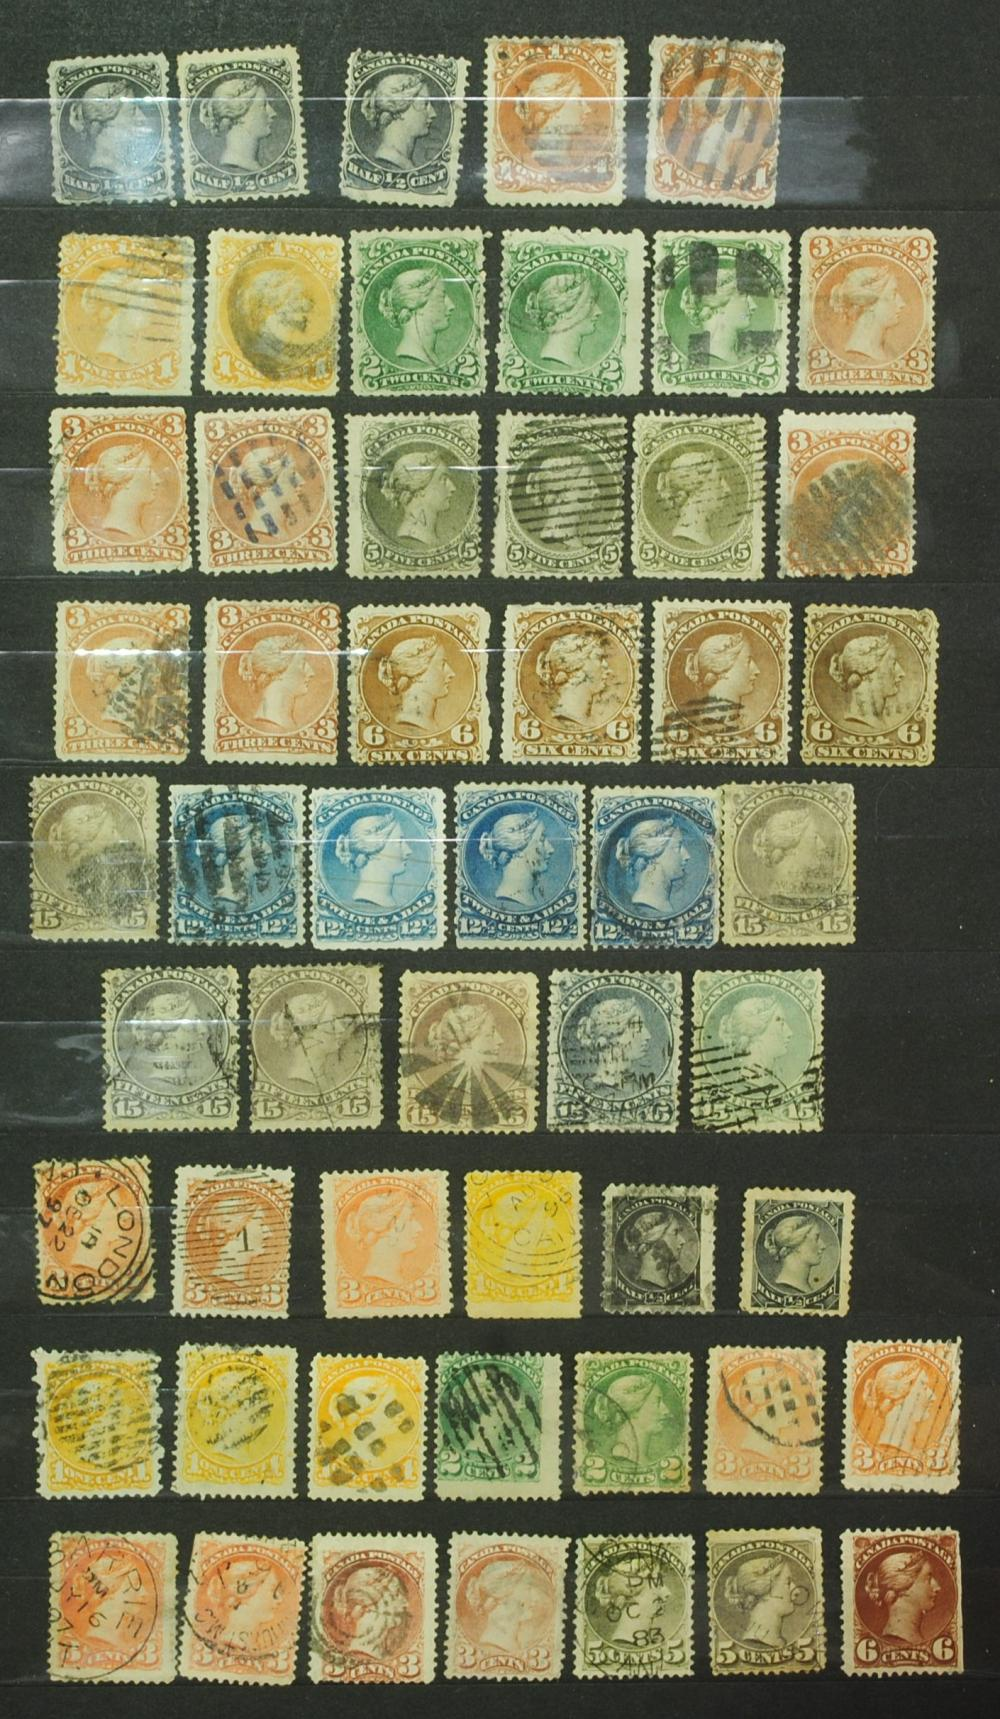 Canada Queen Victoria Stamp Collection - 68 stamps, Small & Large Queens